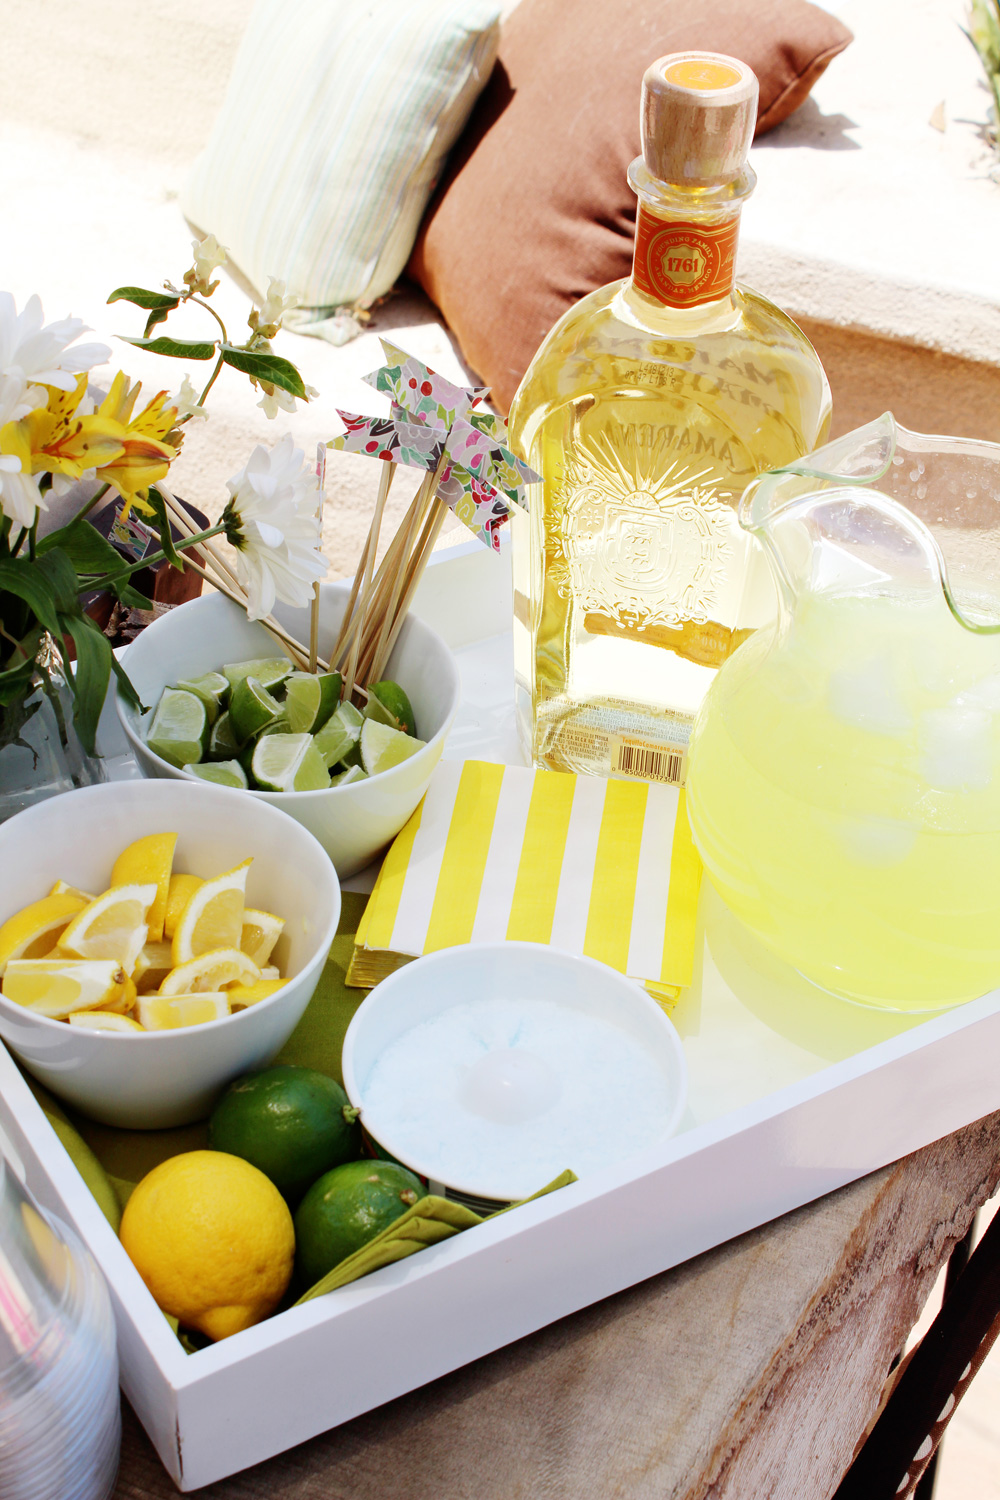 Taylor's First Birthday | Build Your Own Margarita Bar Tray, Paper Flags | PepperDesignBlog.com